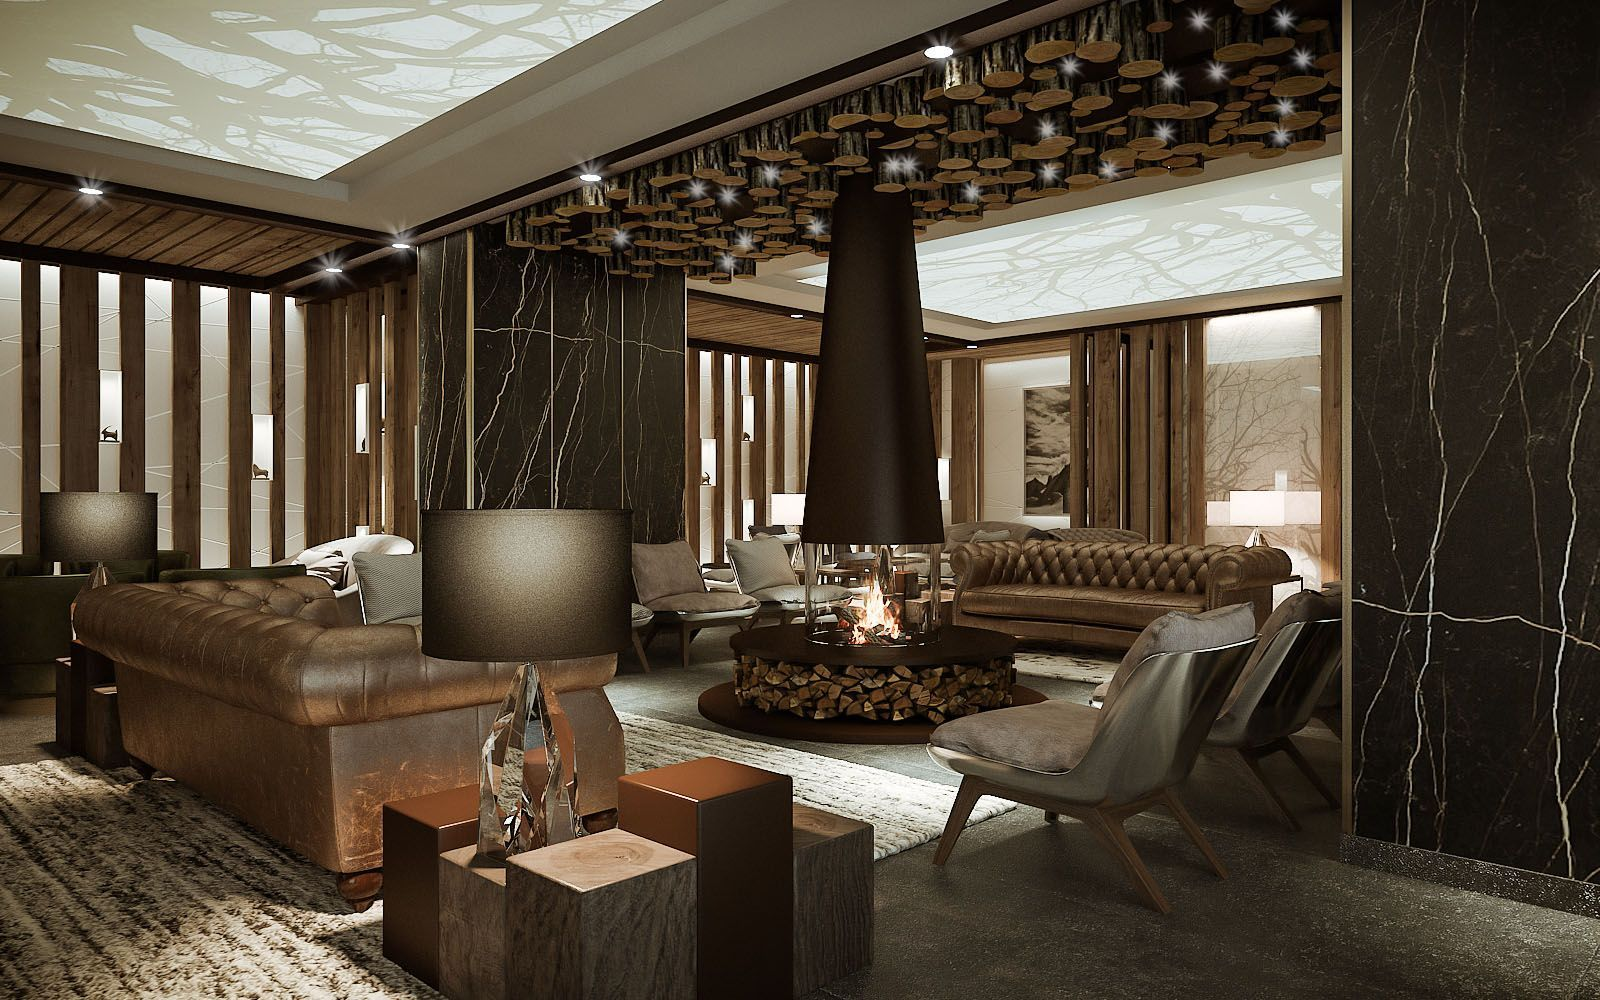 Hotel Massif - High quality Render and Virtual Tour | Fine ...